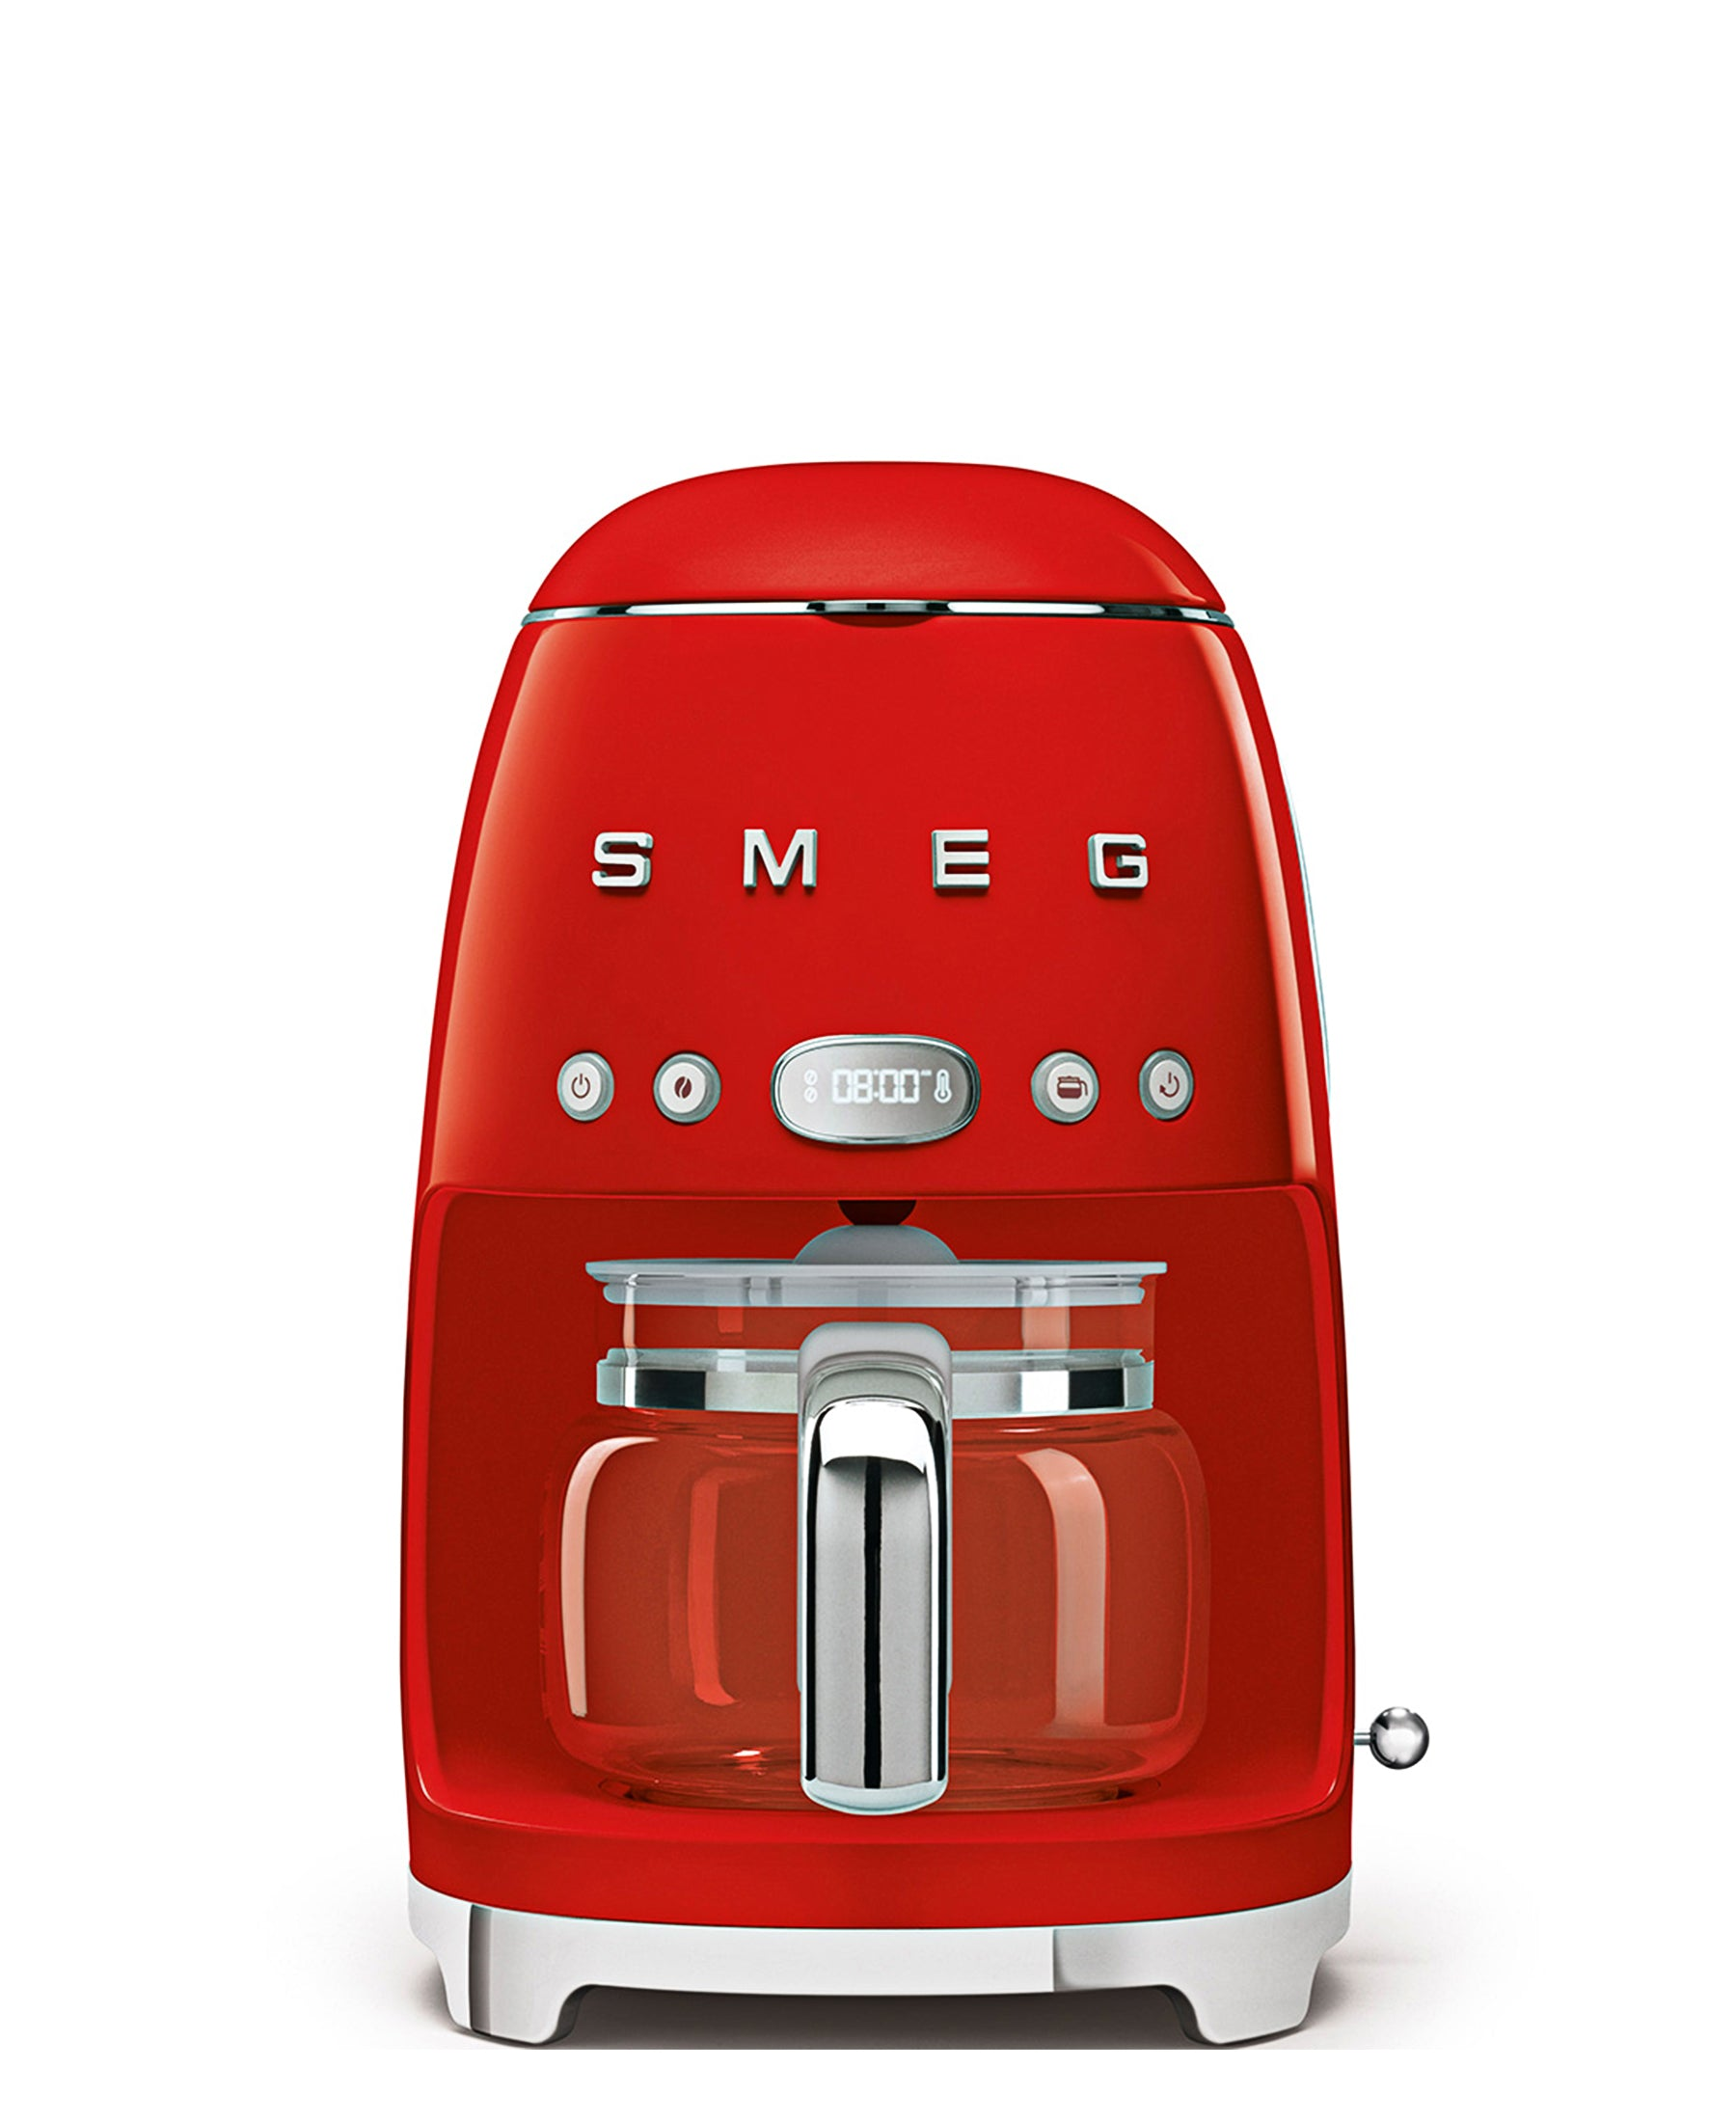 Smeg Drip Coffee Machine - Red